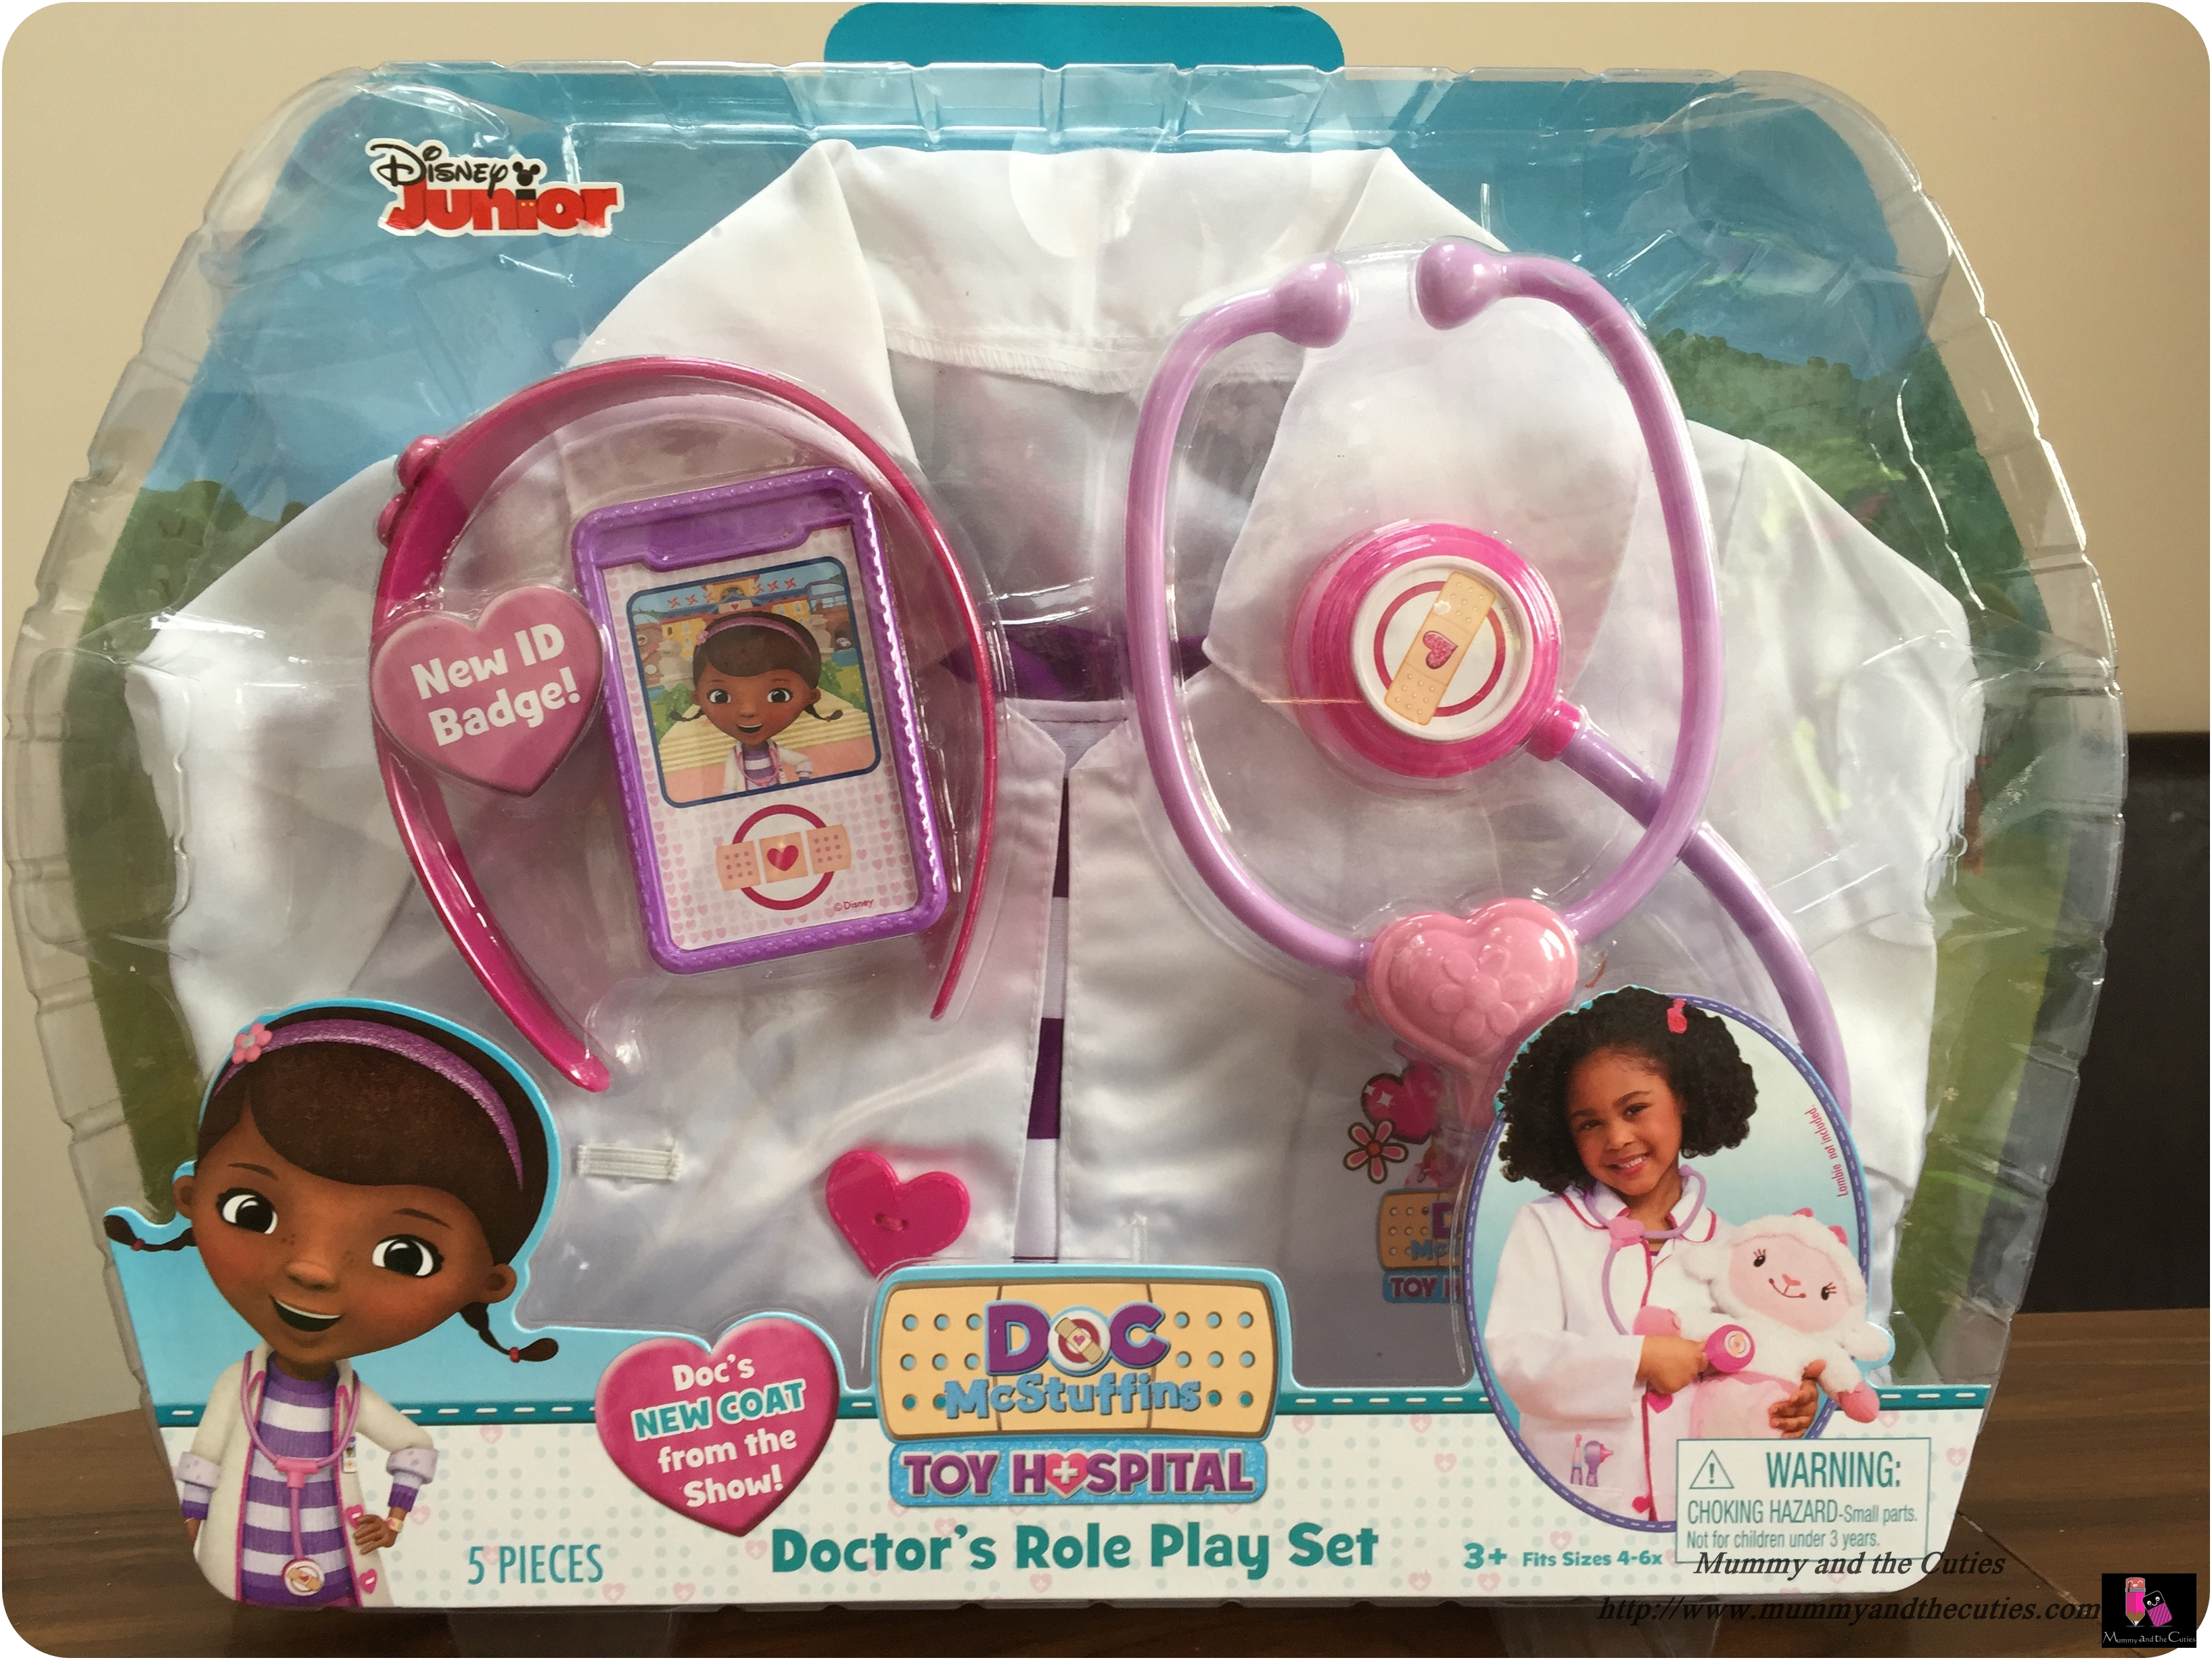 Doc McStuffins Toy Hospital Role Play Set from Flair – Review